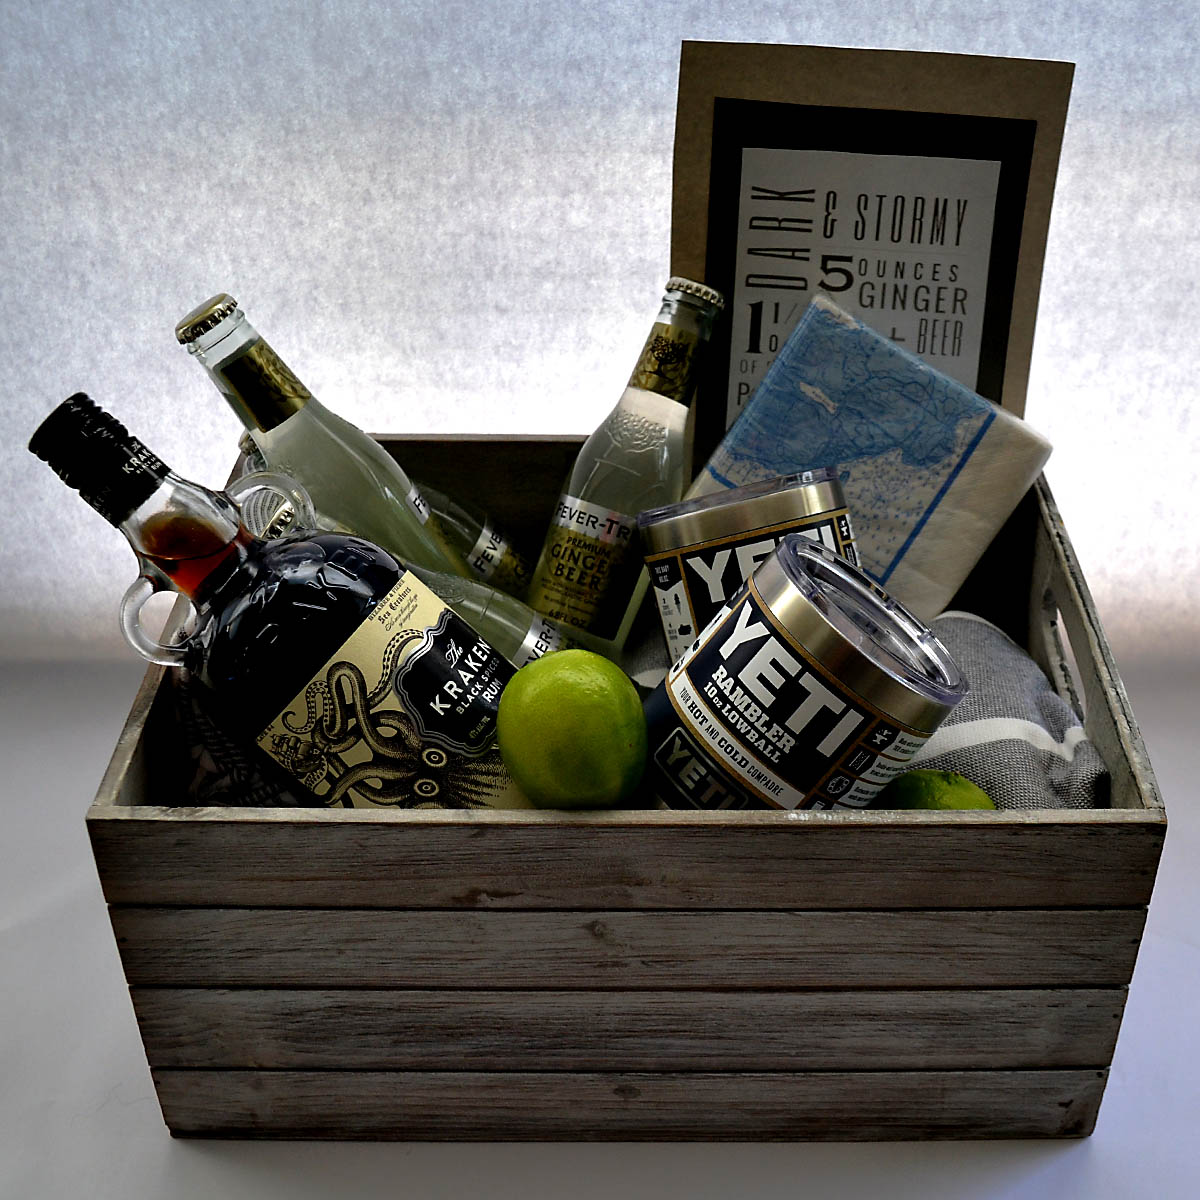 Dark & Stormy Basket - Dark rum, ginger beer, and a little lime— all you need for a Dark & Stormy! This fun basket not only includes all of the makings for the popular drink, it even comes with two Yeti tumblers, cocktail napkins, and a gift certificate to the Islesford Dock Restaurant. Everything you need for the perfect summer evening!